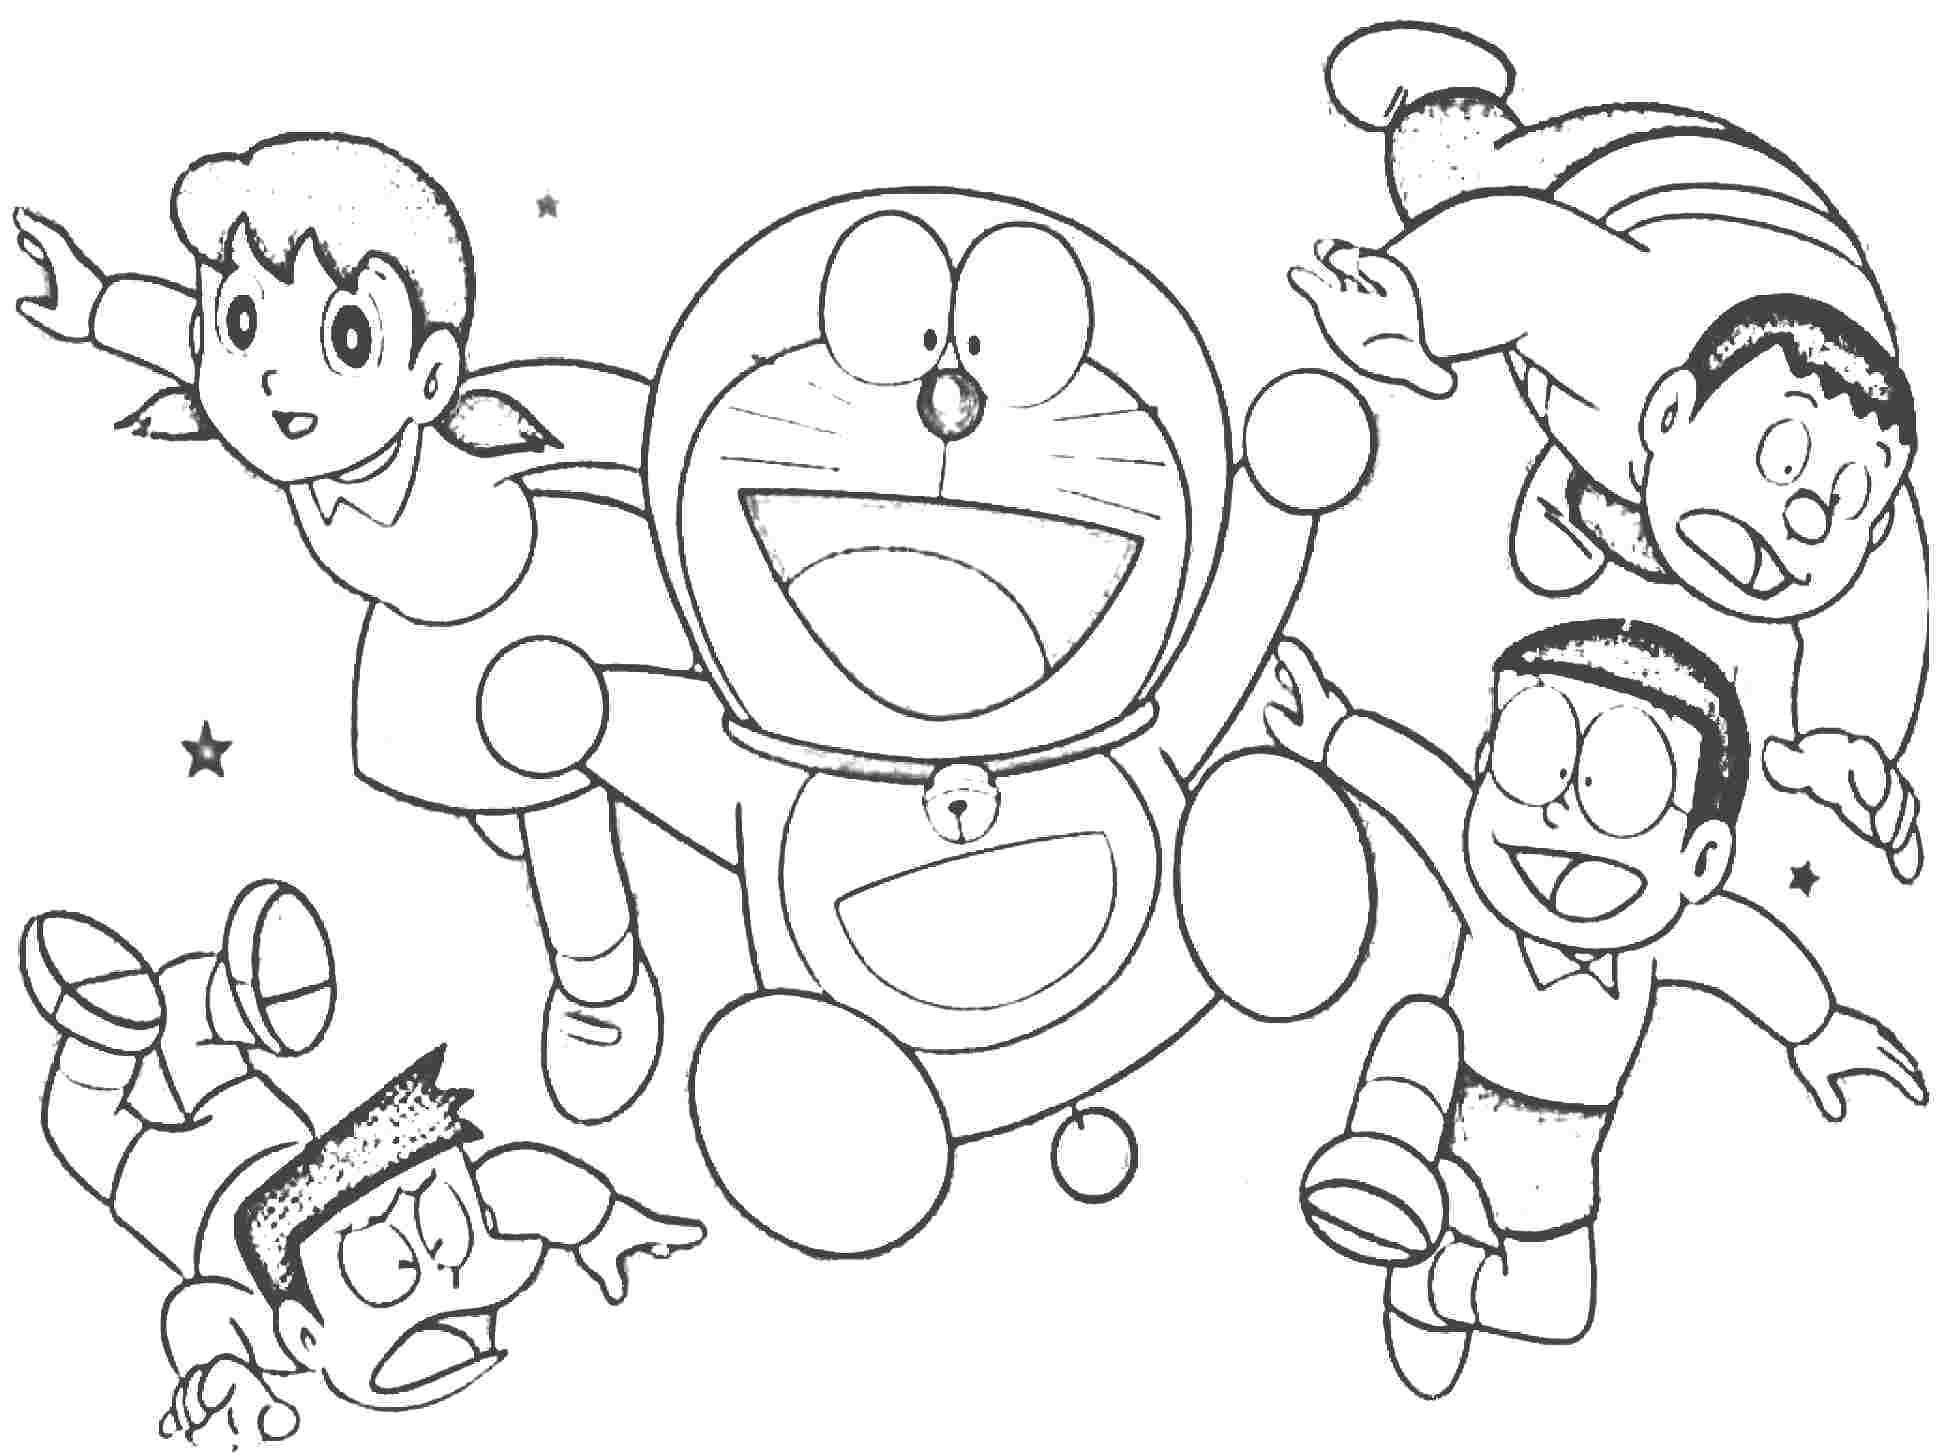 Doraemon coloring games online - Coloring Pages